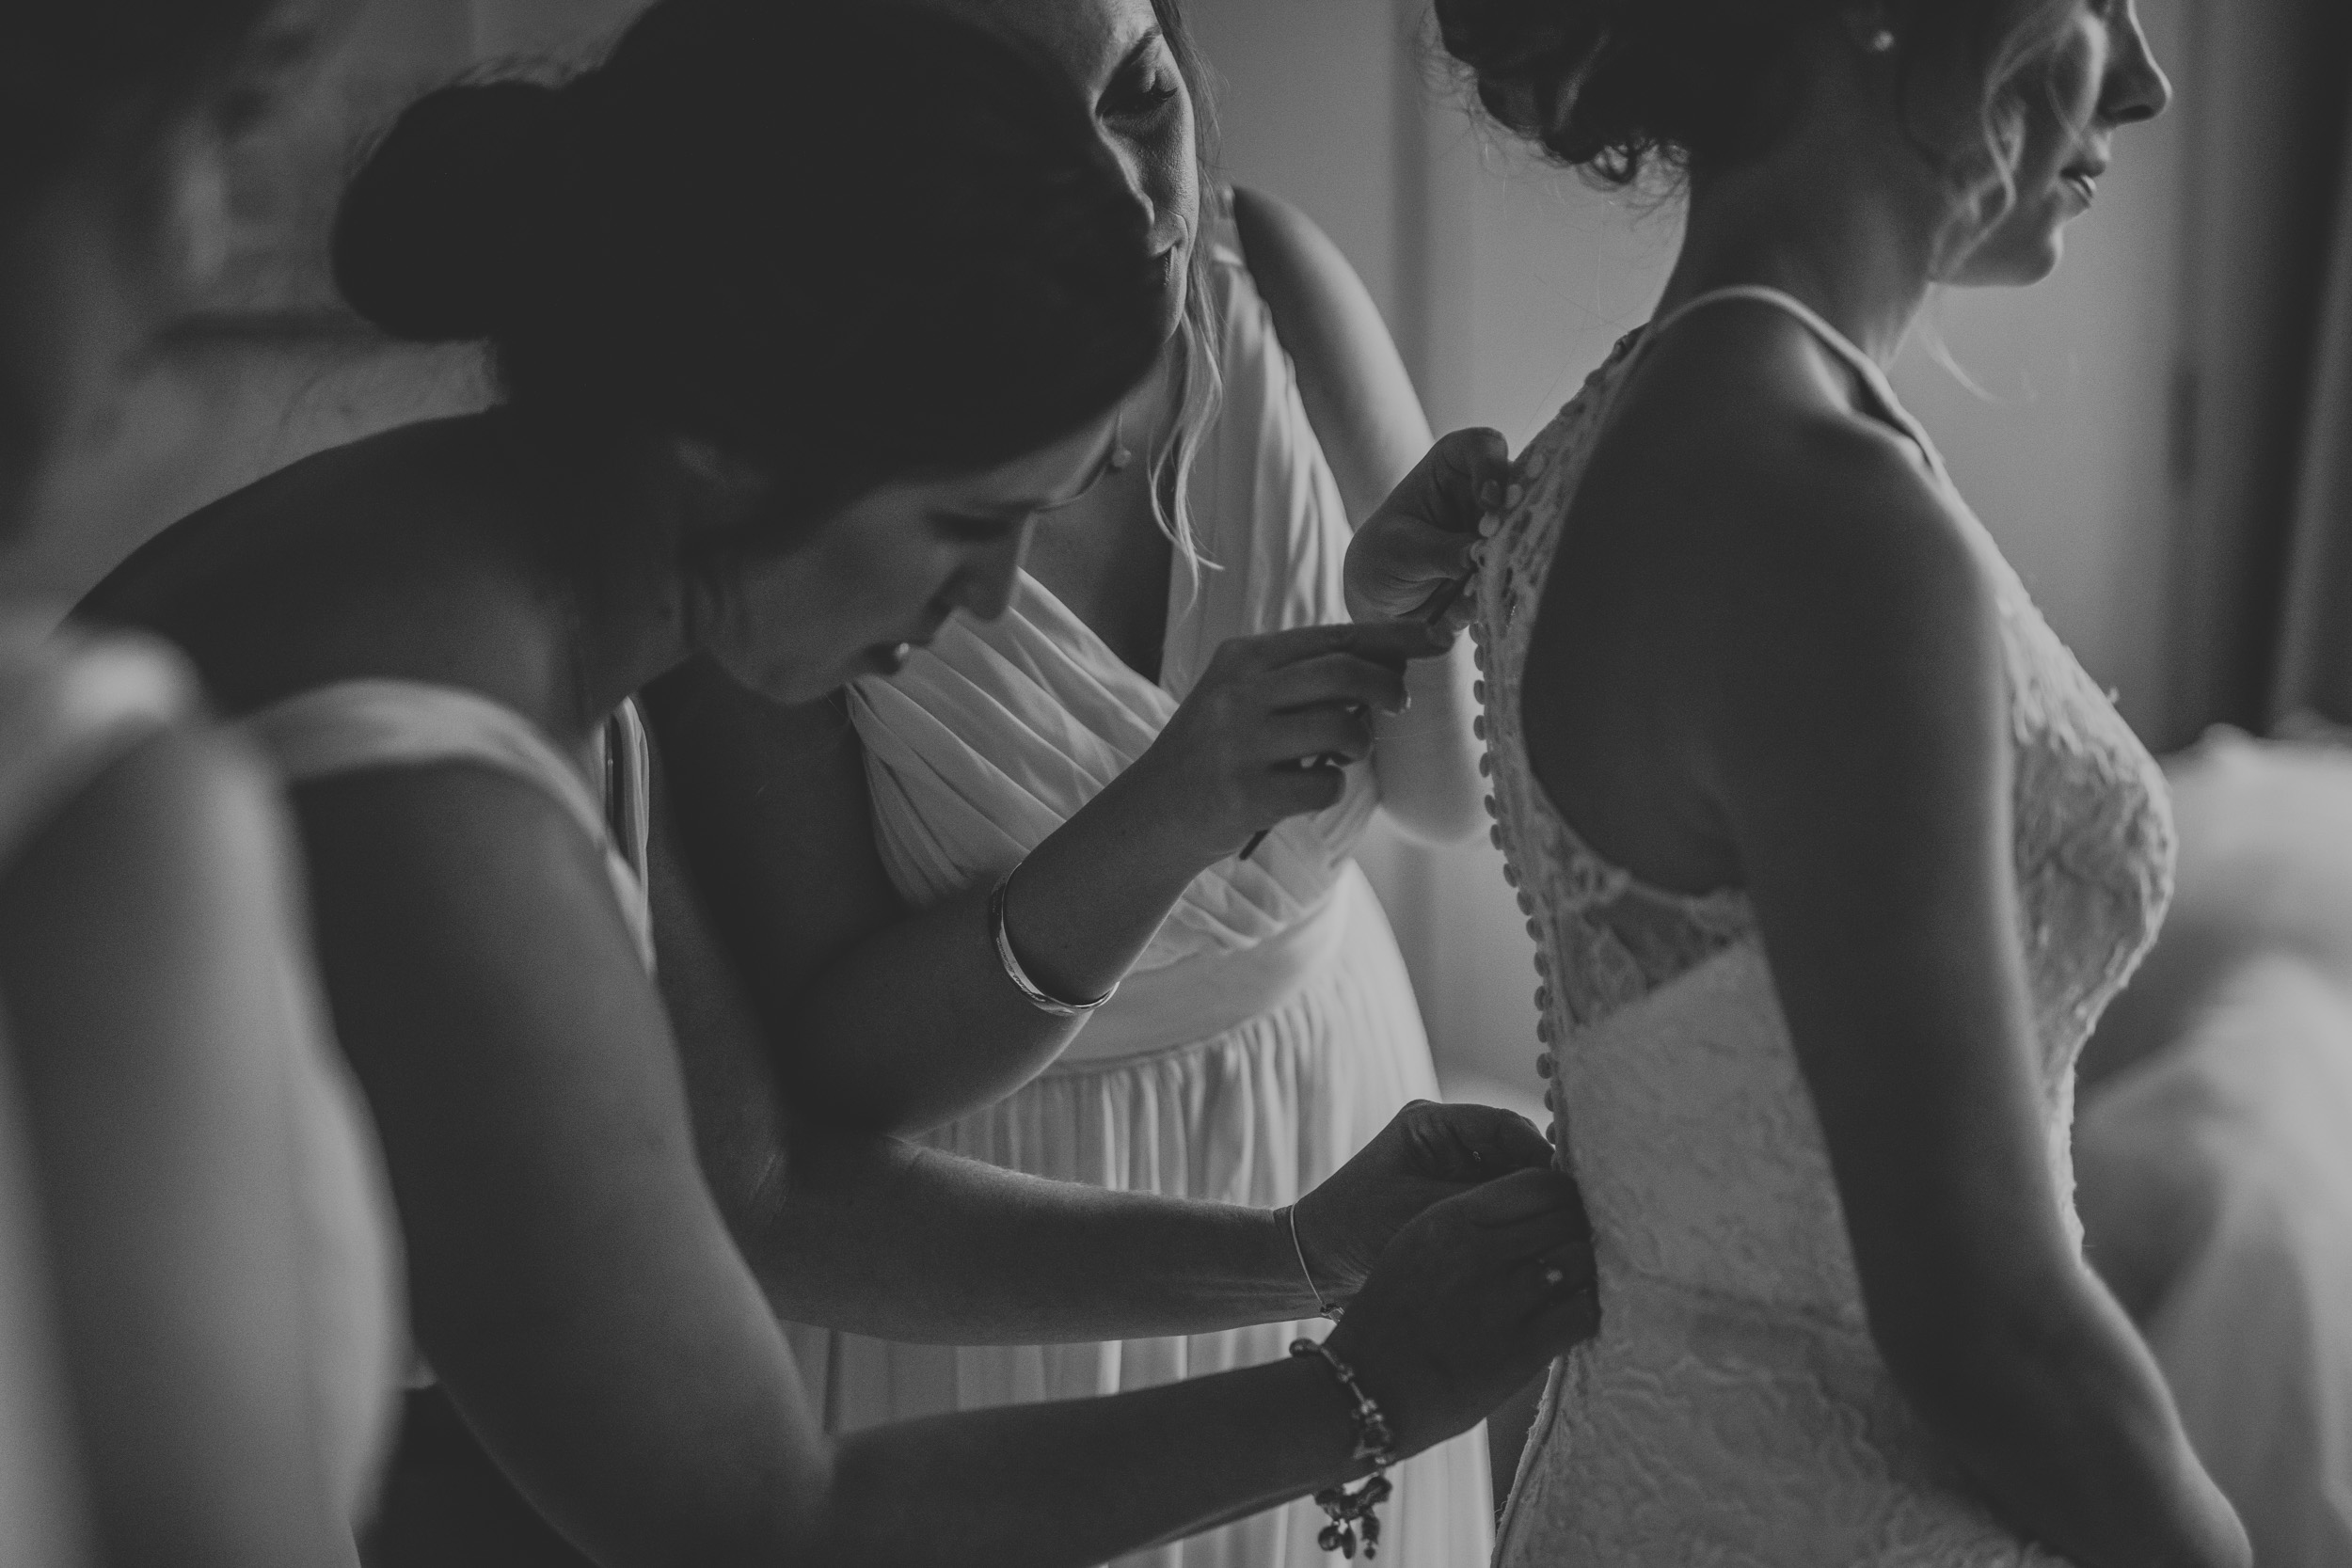 Downtown Chicago Wedding_Polly C Photography 1706141340.jpg